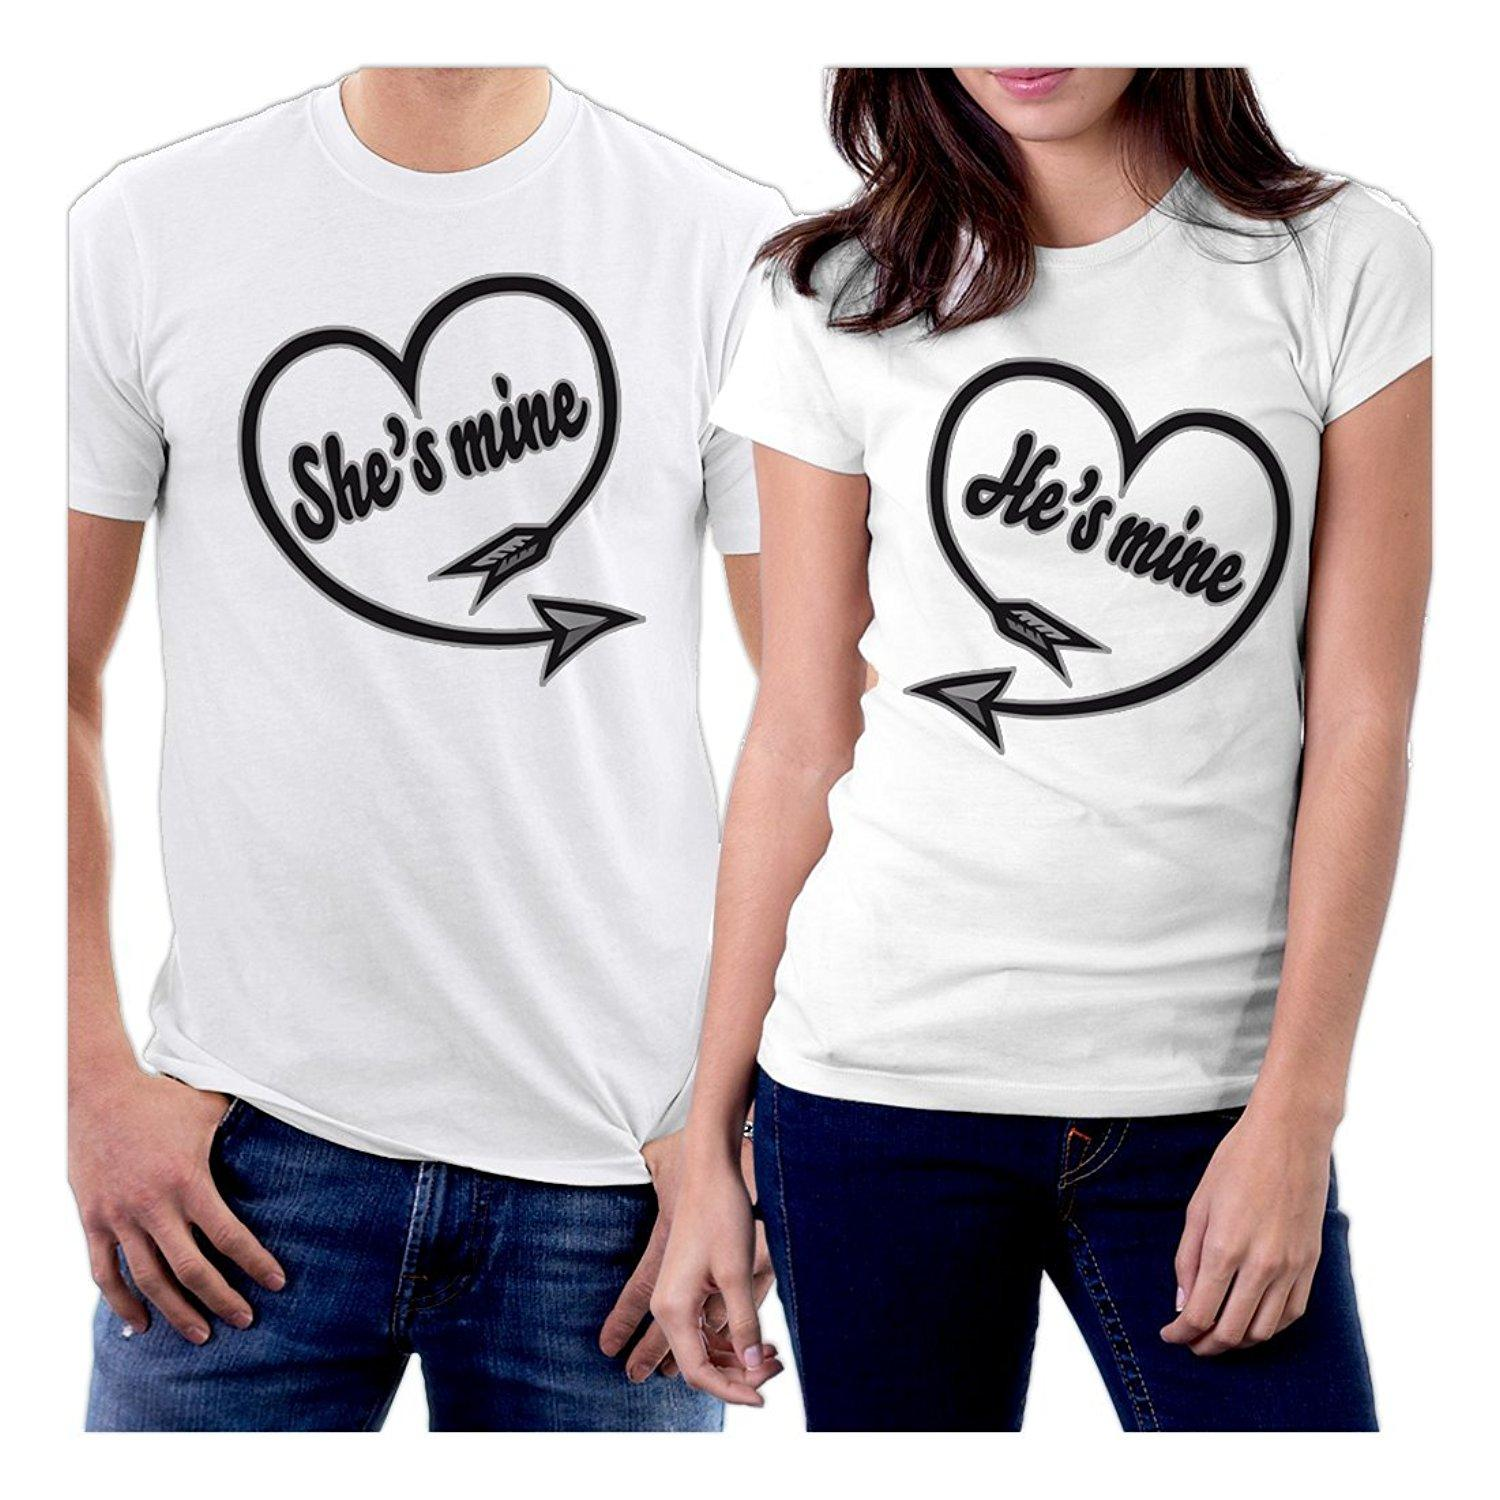 Online Shirt Store Men's New Style Crew Neck Short Sleeve A Team She's Mine & He's Mine Hearts Couple Tee Shirt